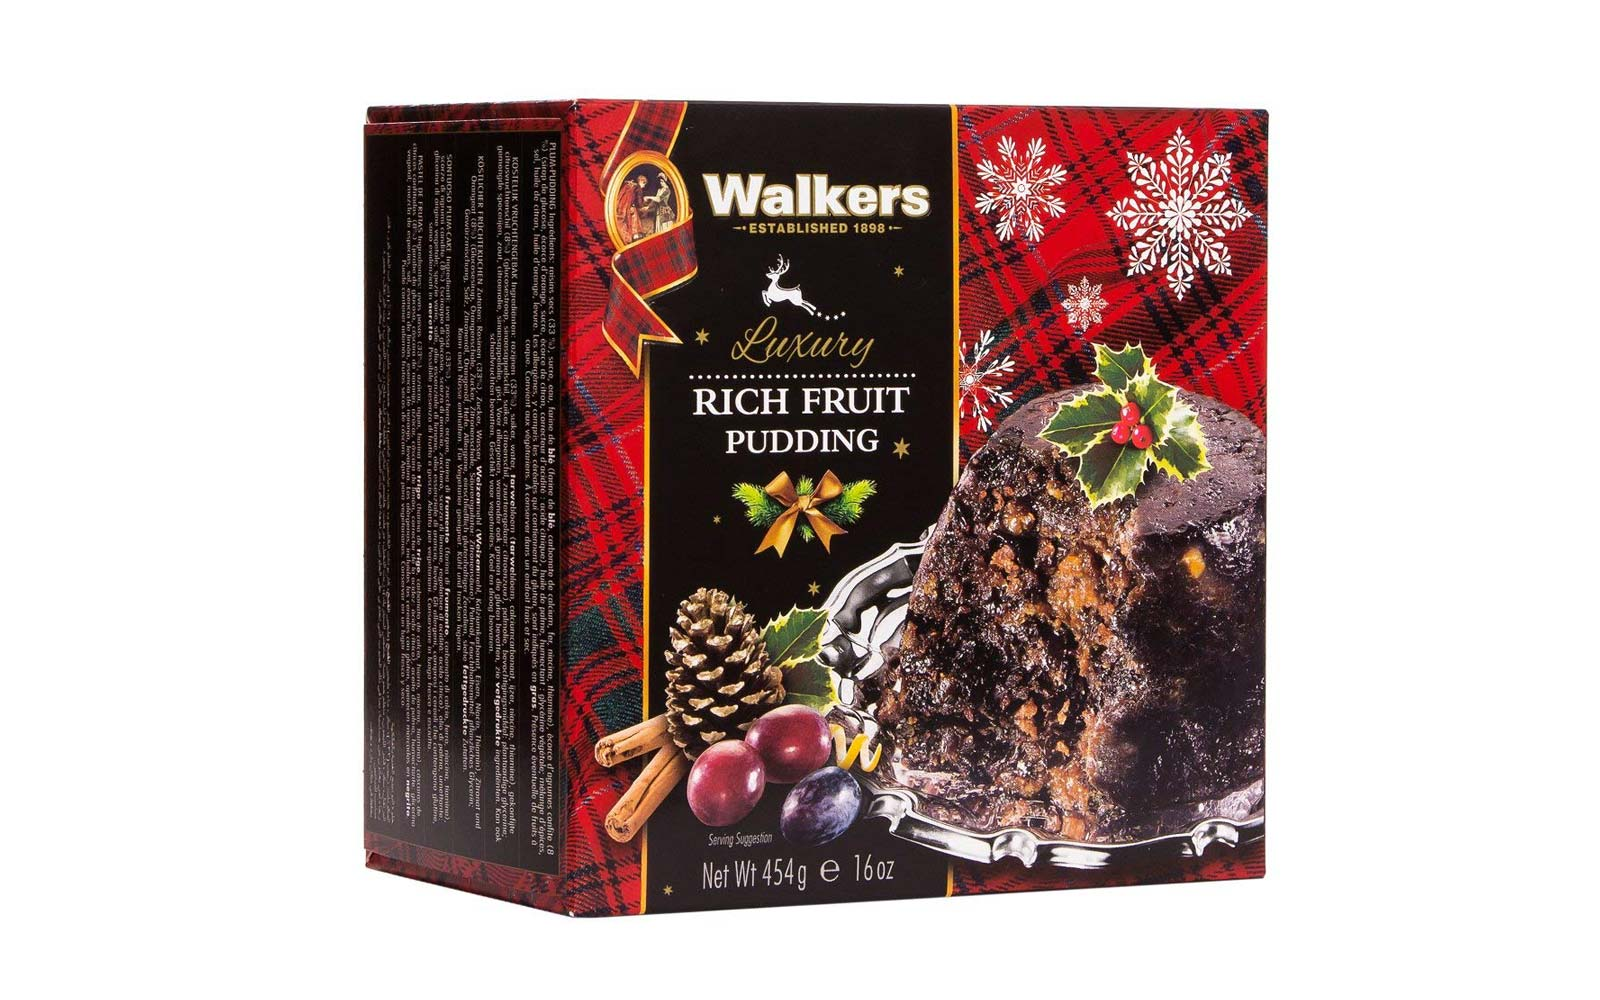 Walkers Shortbread Rich Fruit Pudding